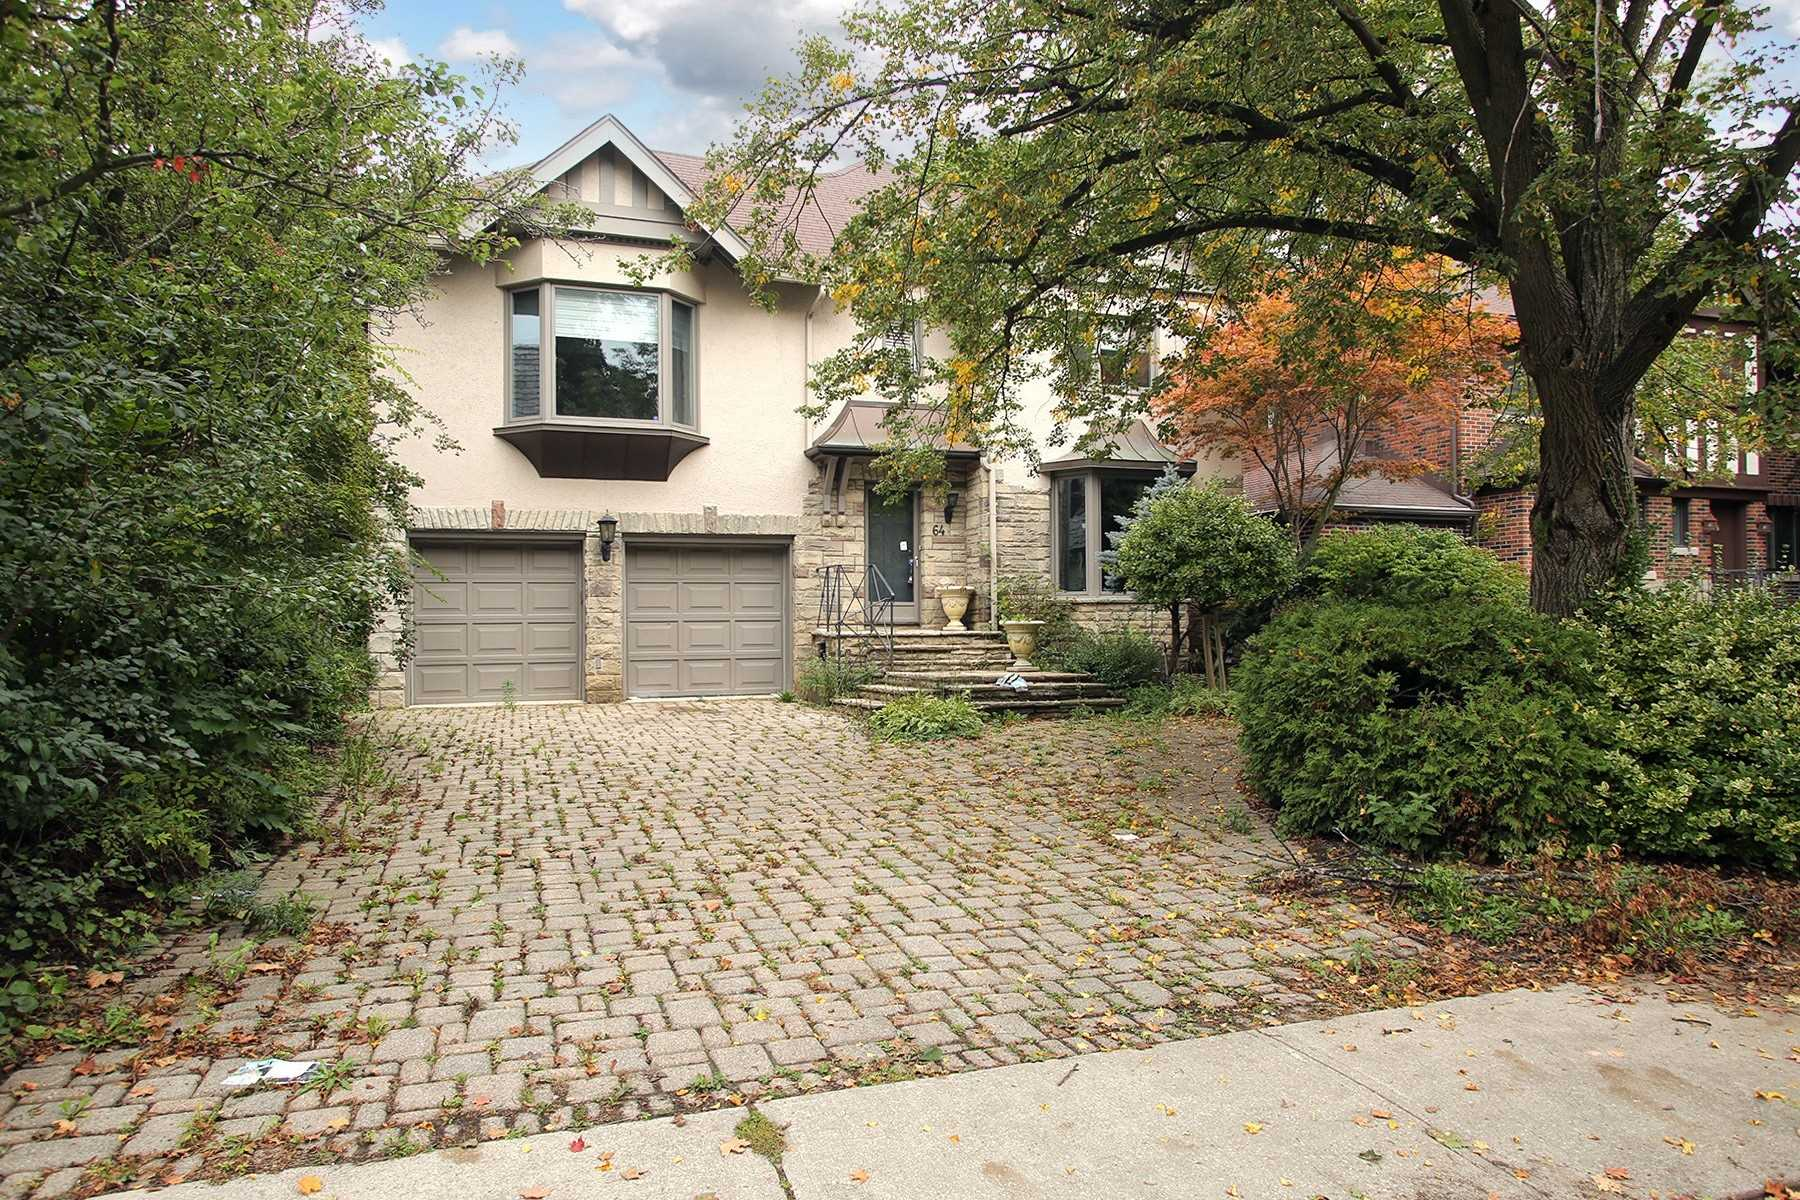 Detached house For Lease In Toronto - 64 Cheltenham Ave, Toronto, Ontario, Canada M4N1P7 , 4 Bedrooms Bedrooms, ,4 BathroomsBathrooms,Detached,For Lease,Cheltenham